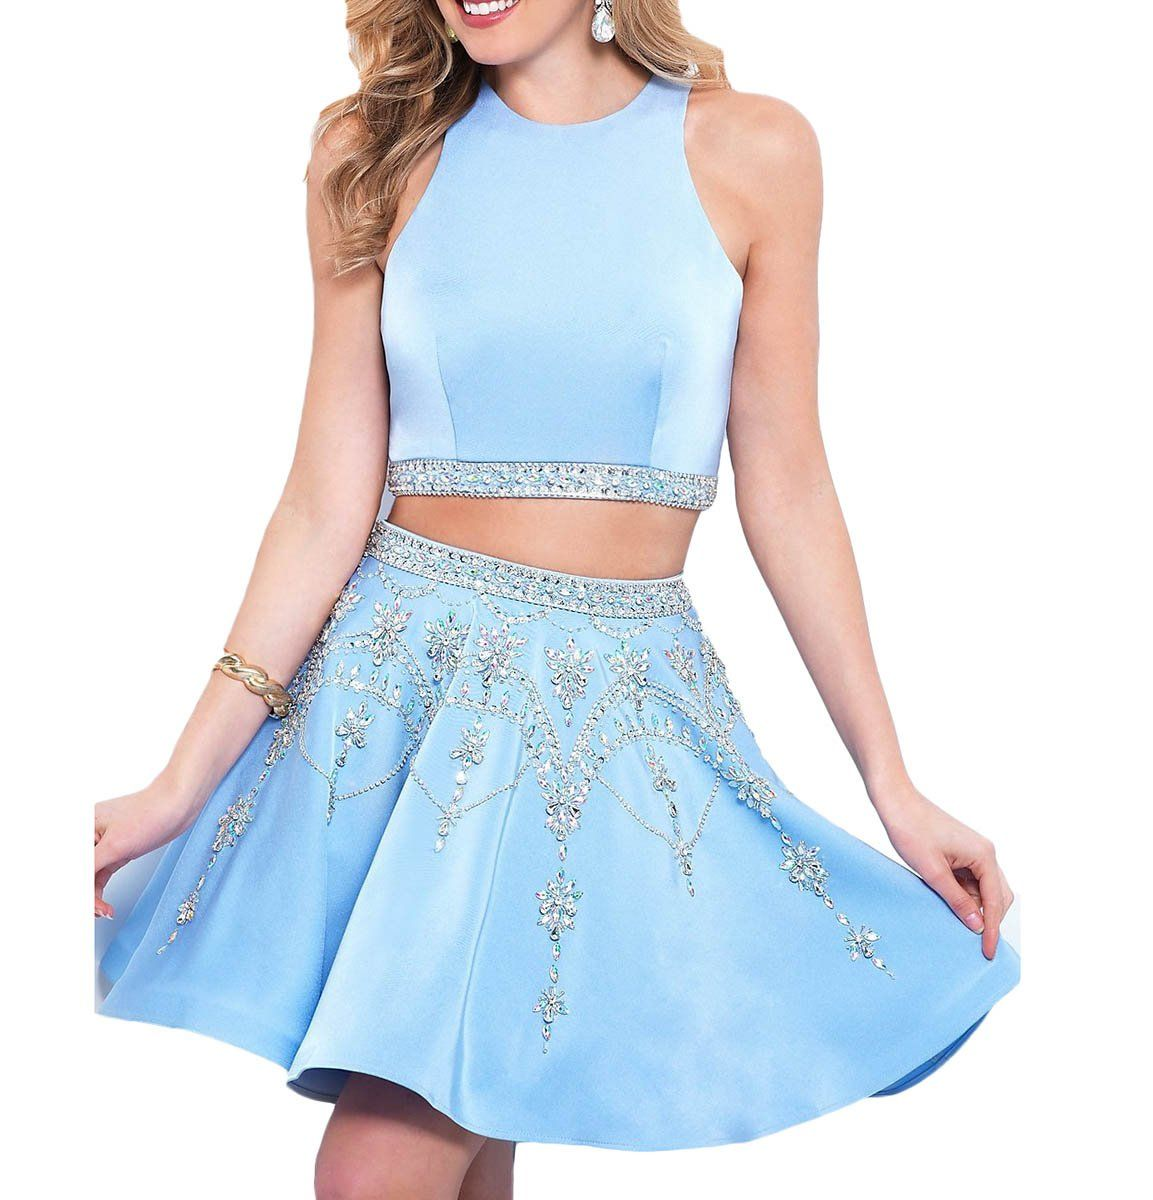 Udresses short two pieces sky blue luxury beaded homecoming prom